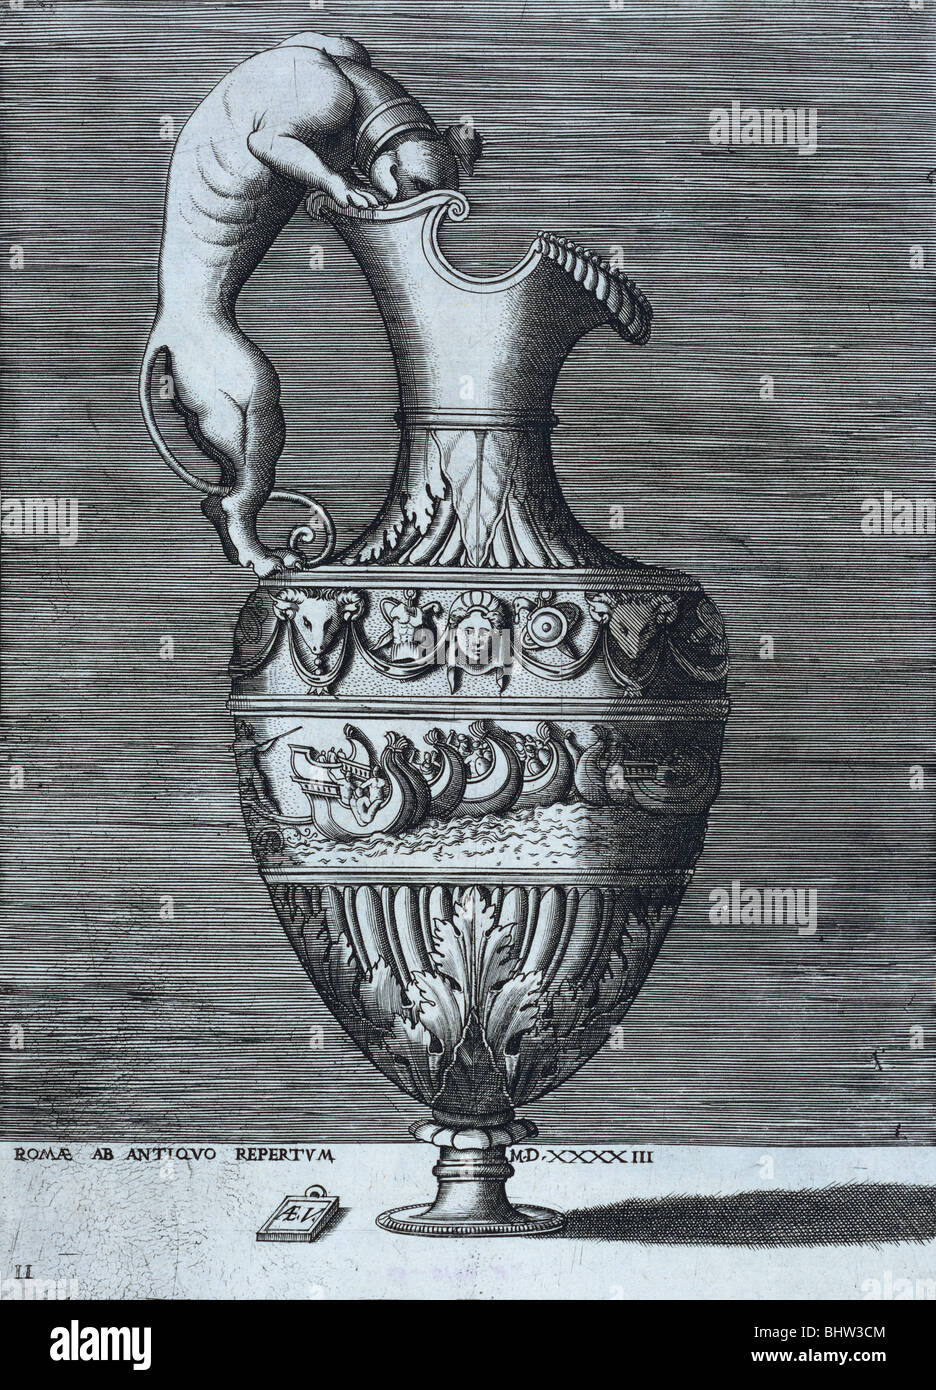 Ewer, engraving by Enea Vico. Rome, Italy, late 16th century Stock Photo